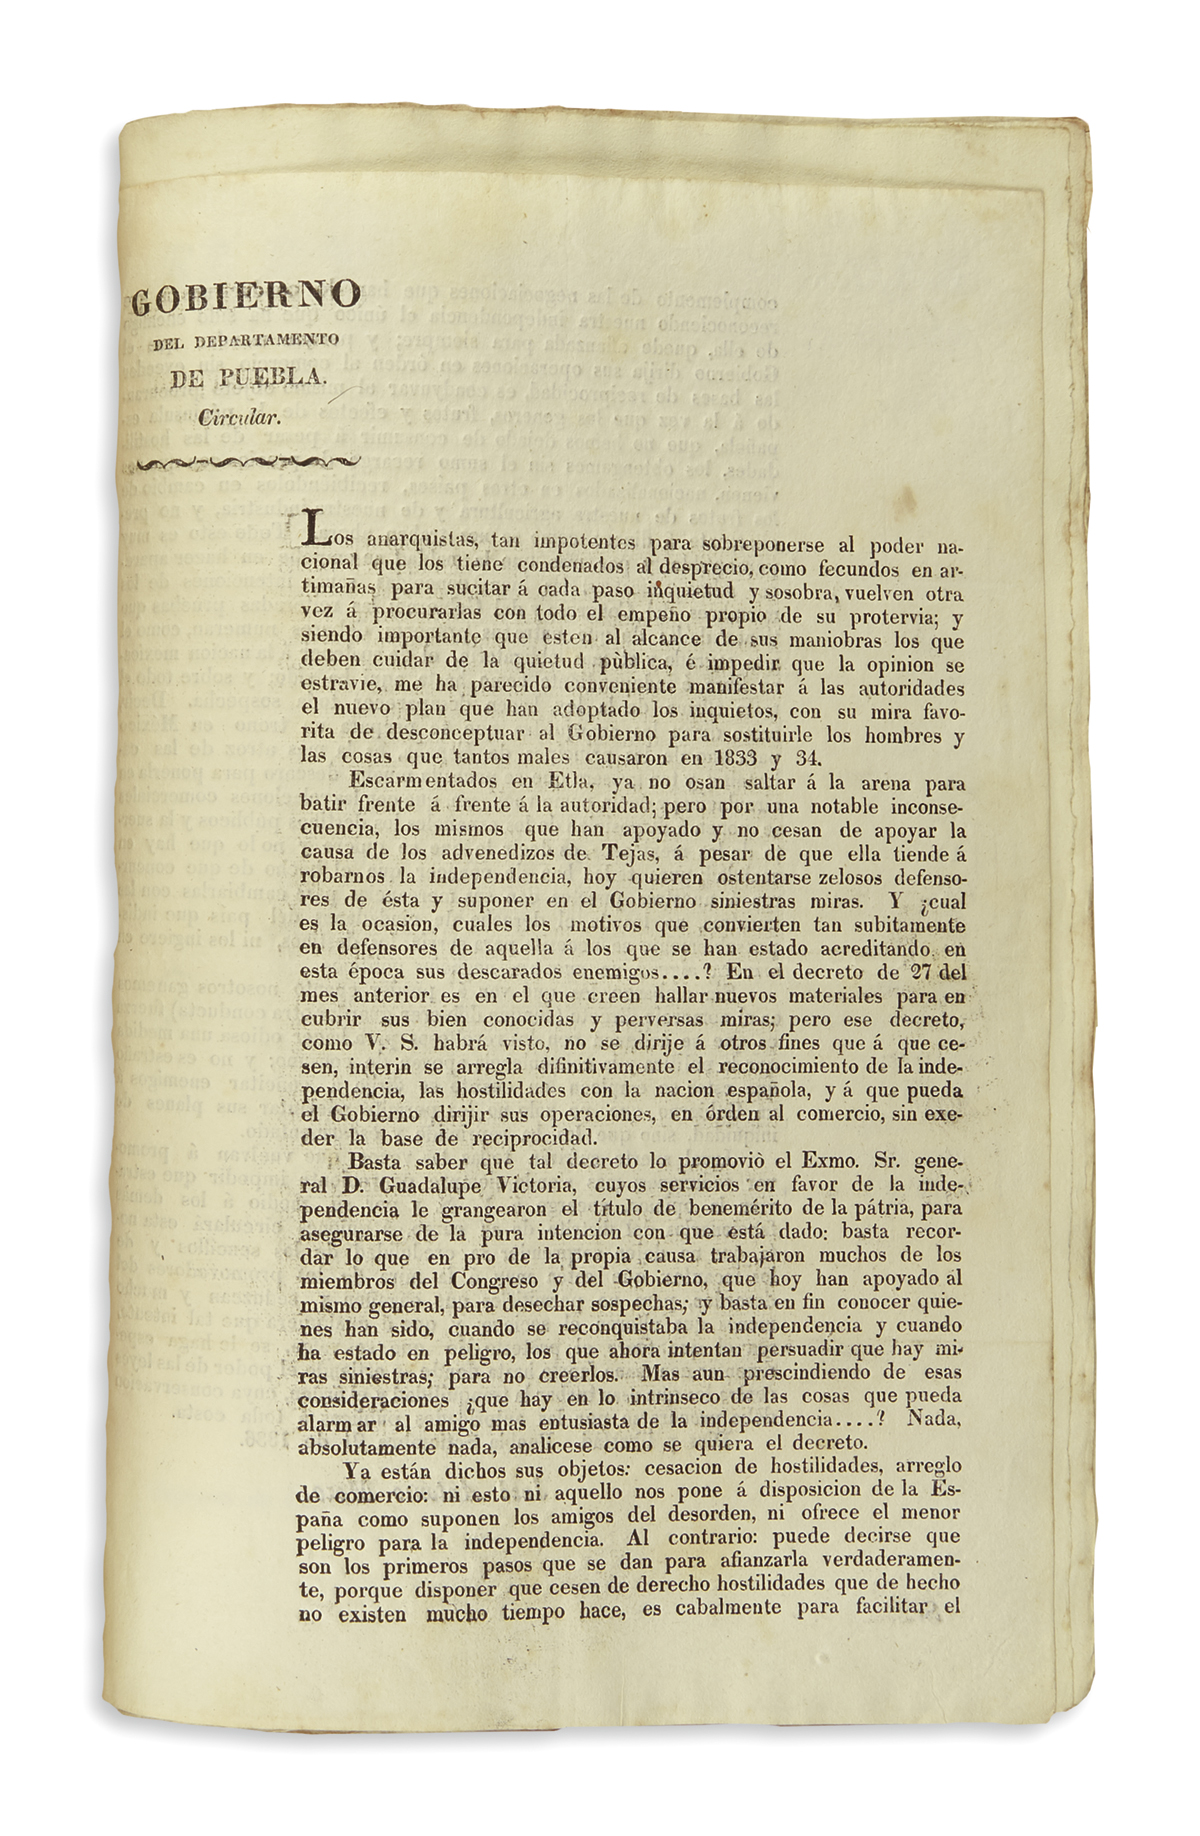 (MEXICAN IMPRINT--PUEBLA.) Bound volume of decrees issued by the state of Puebla, some relating to the war with Texas.